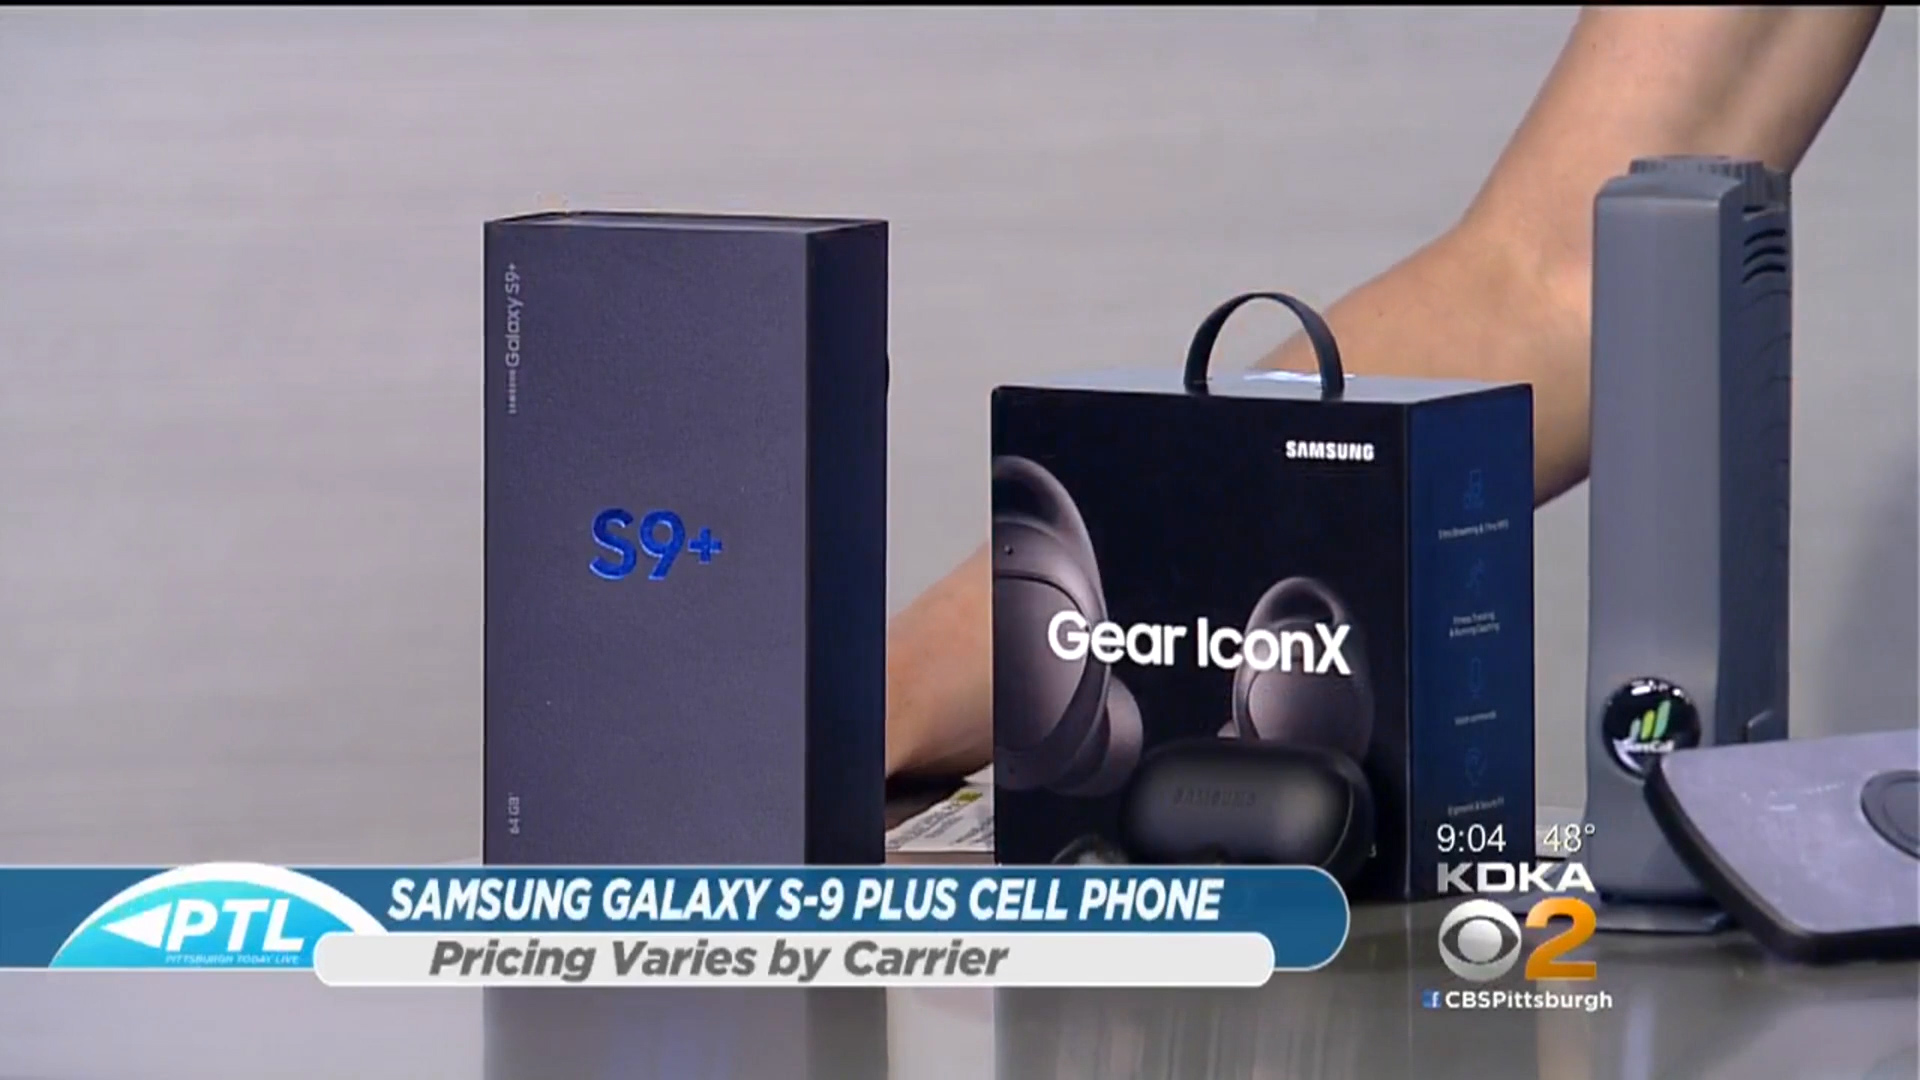 SAMSUNG GALAXY S-9 PLUS CELL PHONE - Pricing varies by carrierShop Now